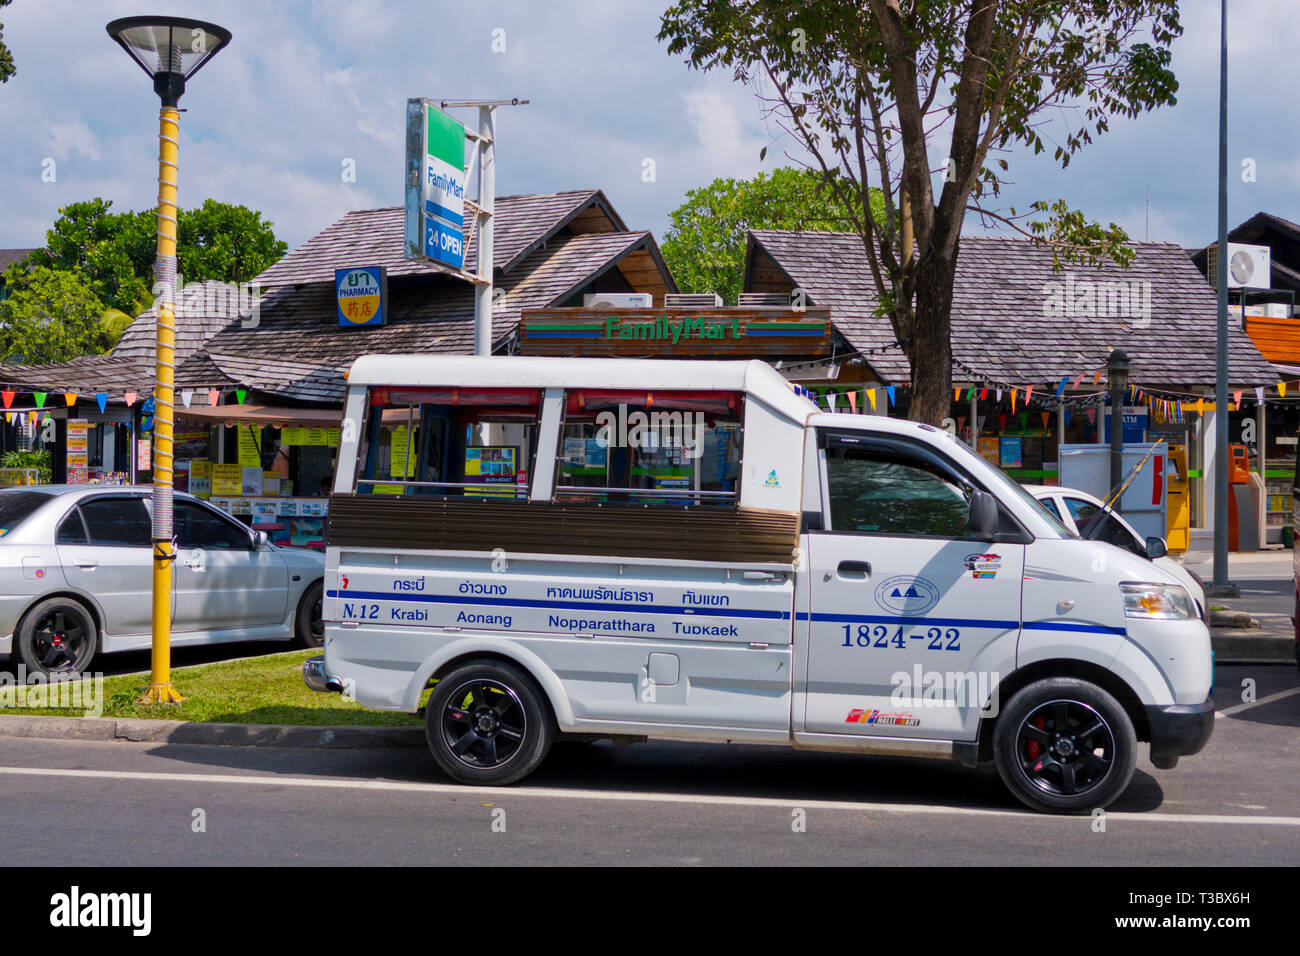 Songthaew, share bus, Beach road, Road 4203, Hat Noppharat Thara, Krabi province, Thailand - Stock Image